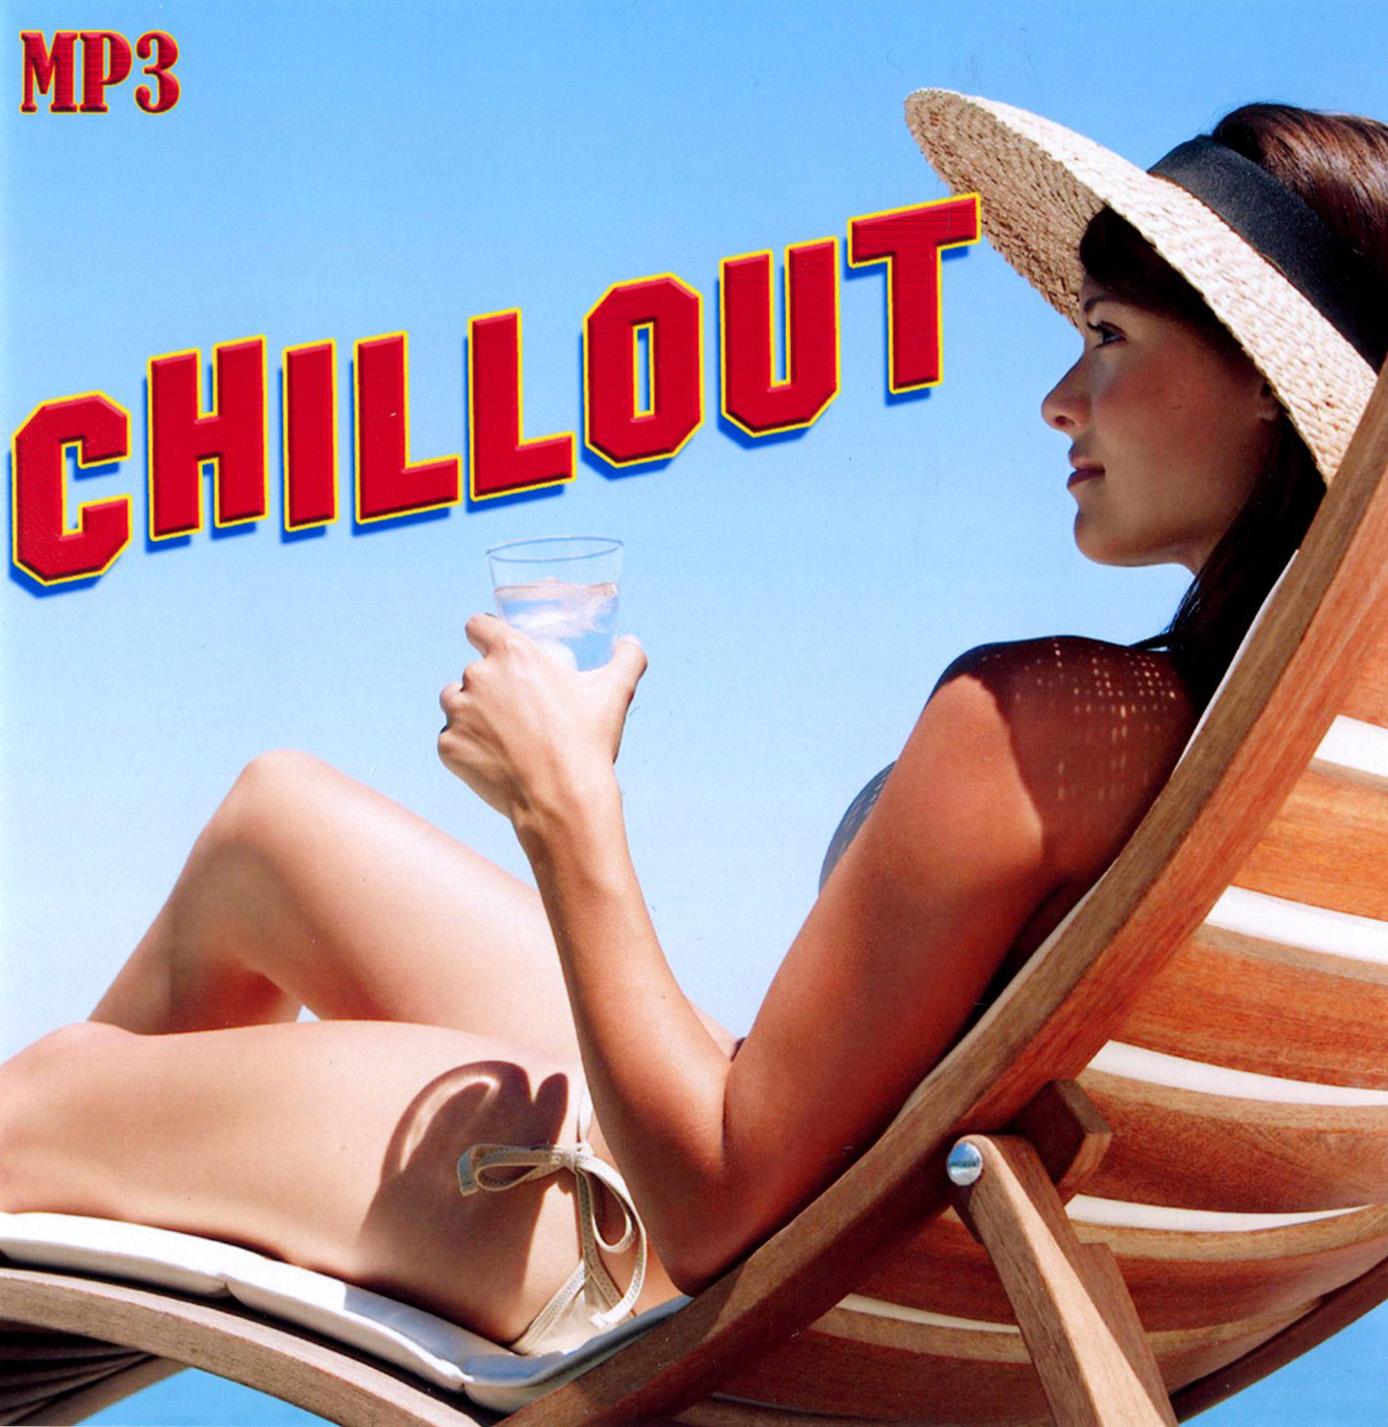 Chillout [mp3]